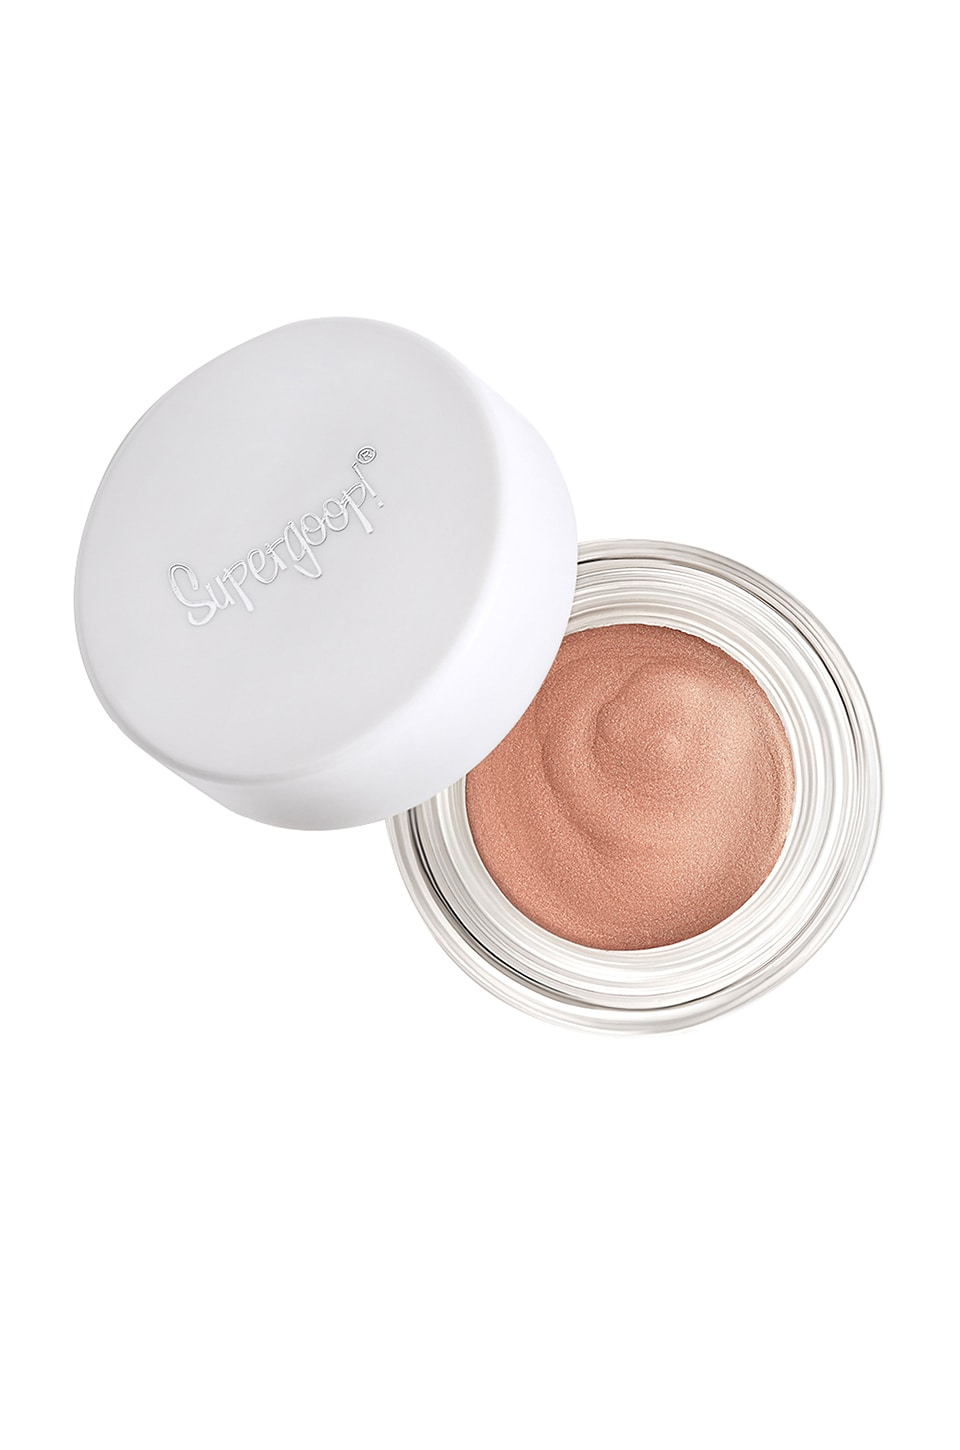 Supergoop! Shimmer Shade SPF 30 in Daydream